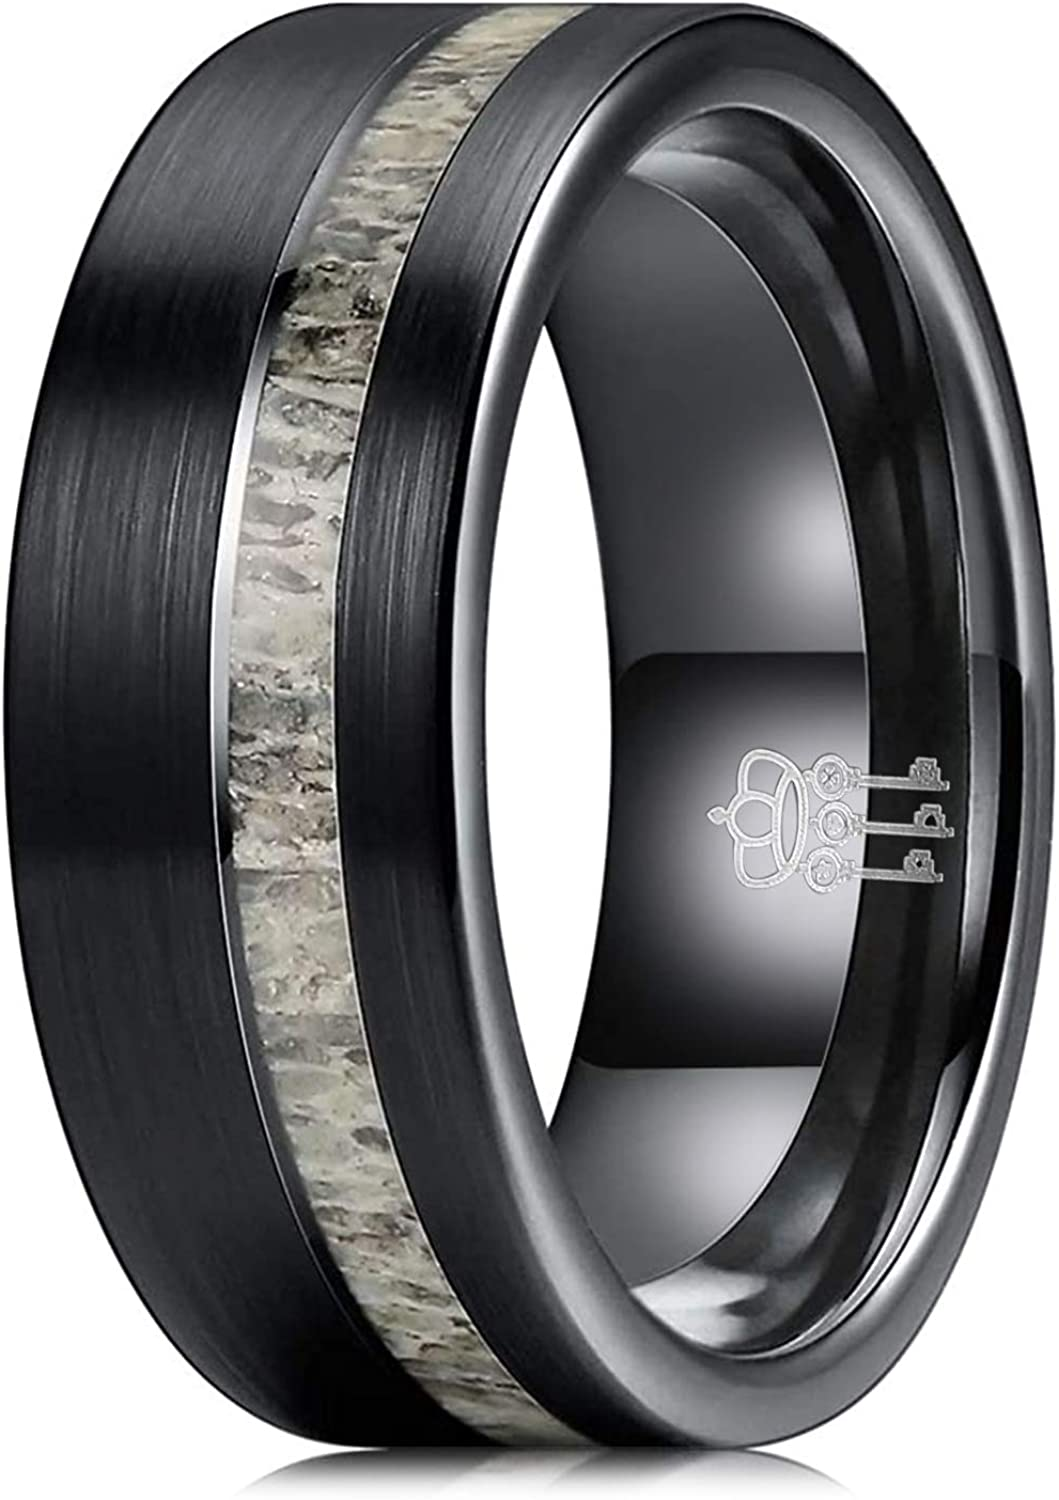 THREE KEYS JEWELRY 8mm Real Antler/Turquoise Inlay Brushed Tungsten Wedding Ring Black Hunting Band for Men